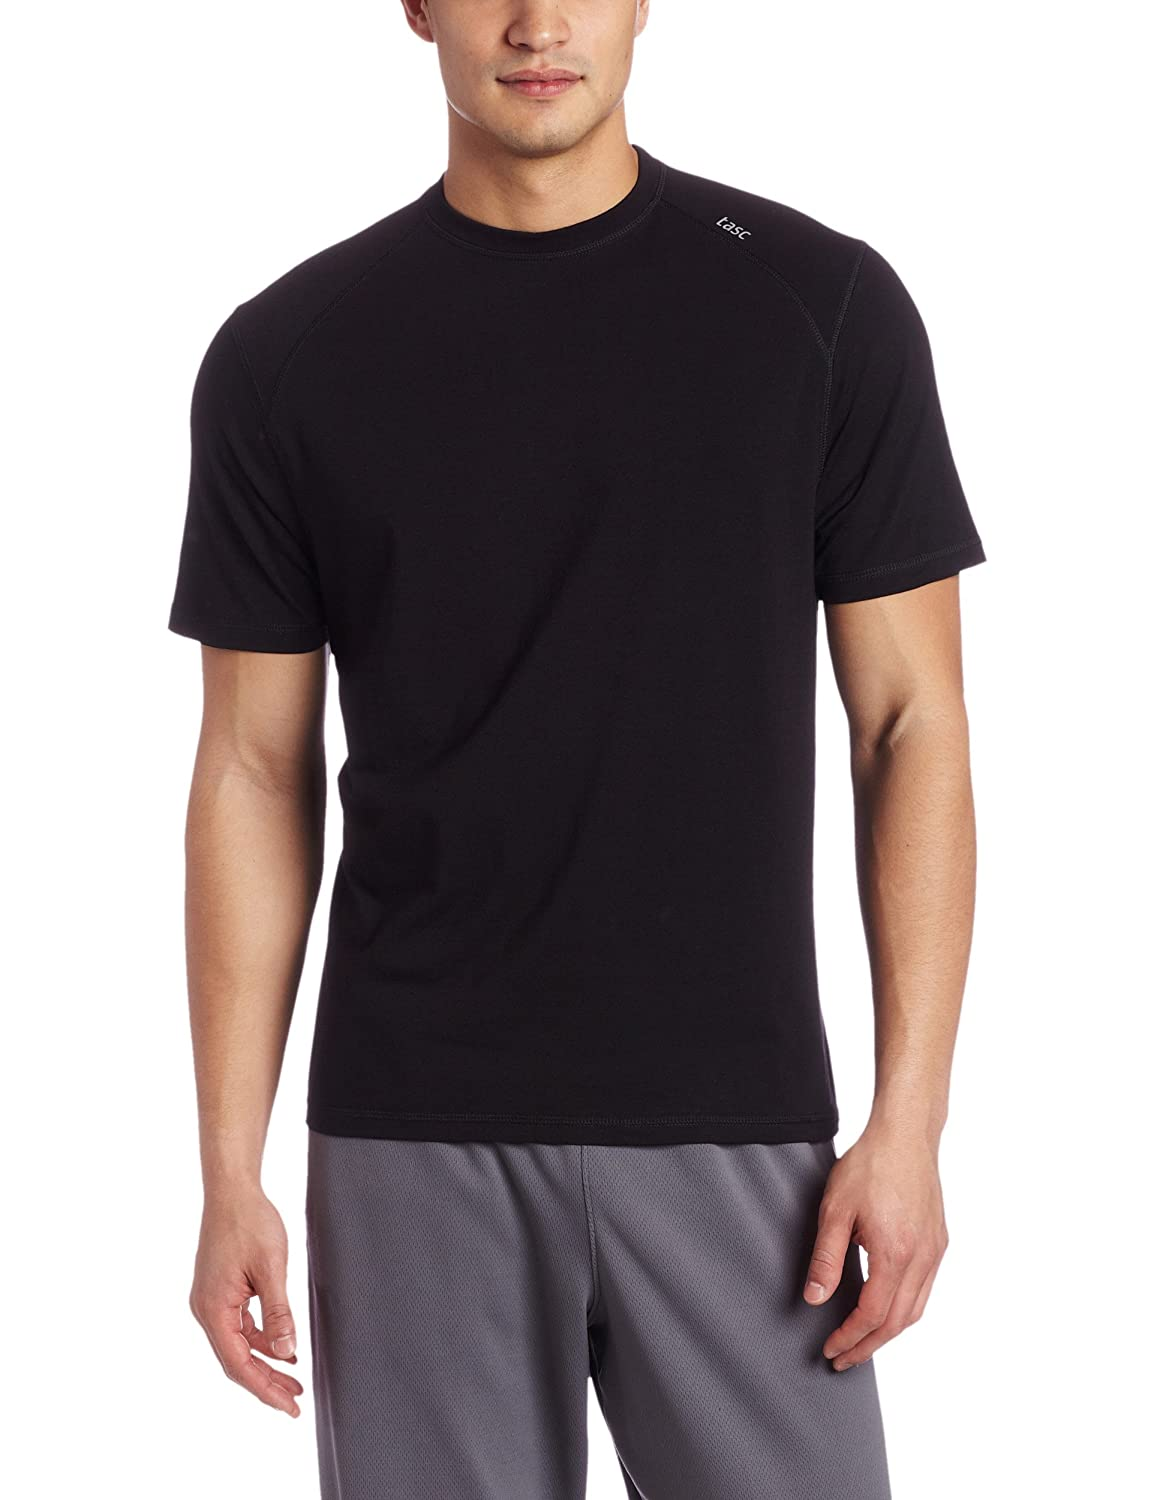 tasc Performance Herren T-shirt Carrollton